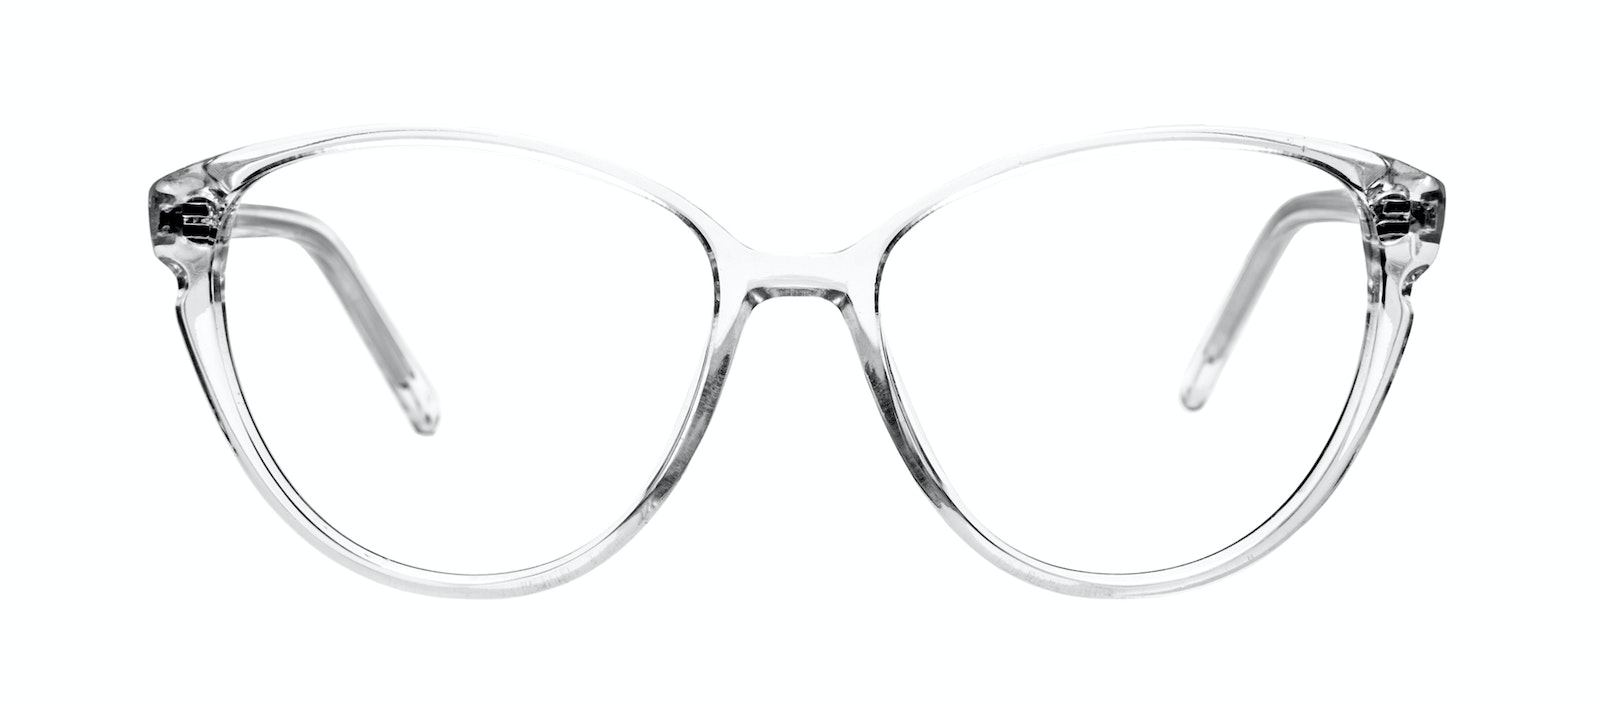 0edbd1dd46932 Expose. Previous. Affordable Fashion Glasses Cat Eye Eyeglasses Women  Expose Rusty Teal Front ...